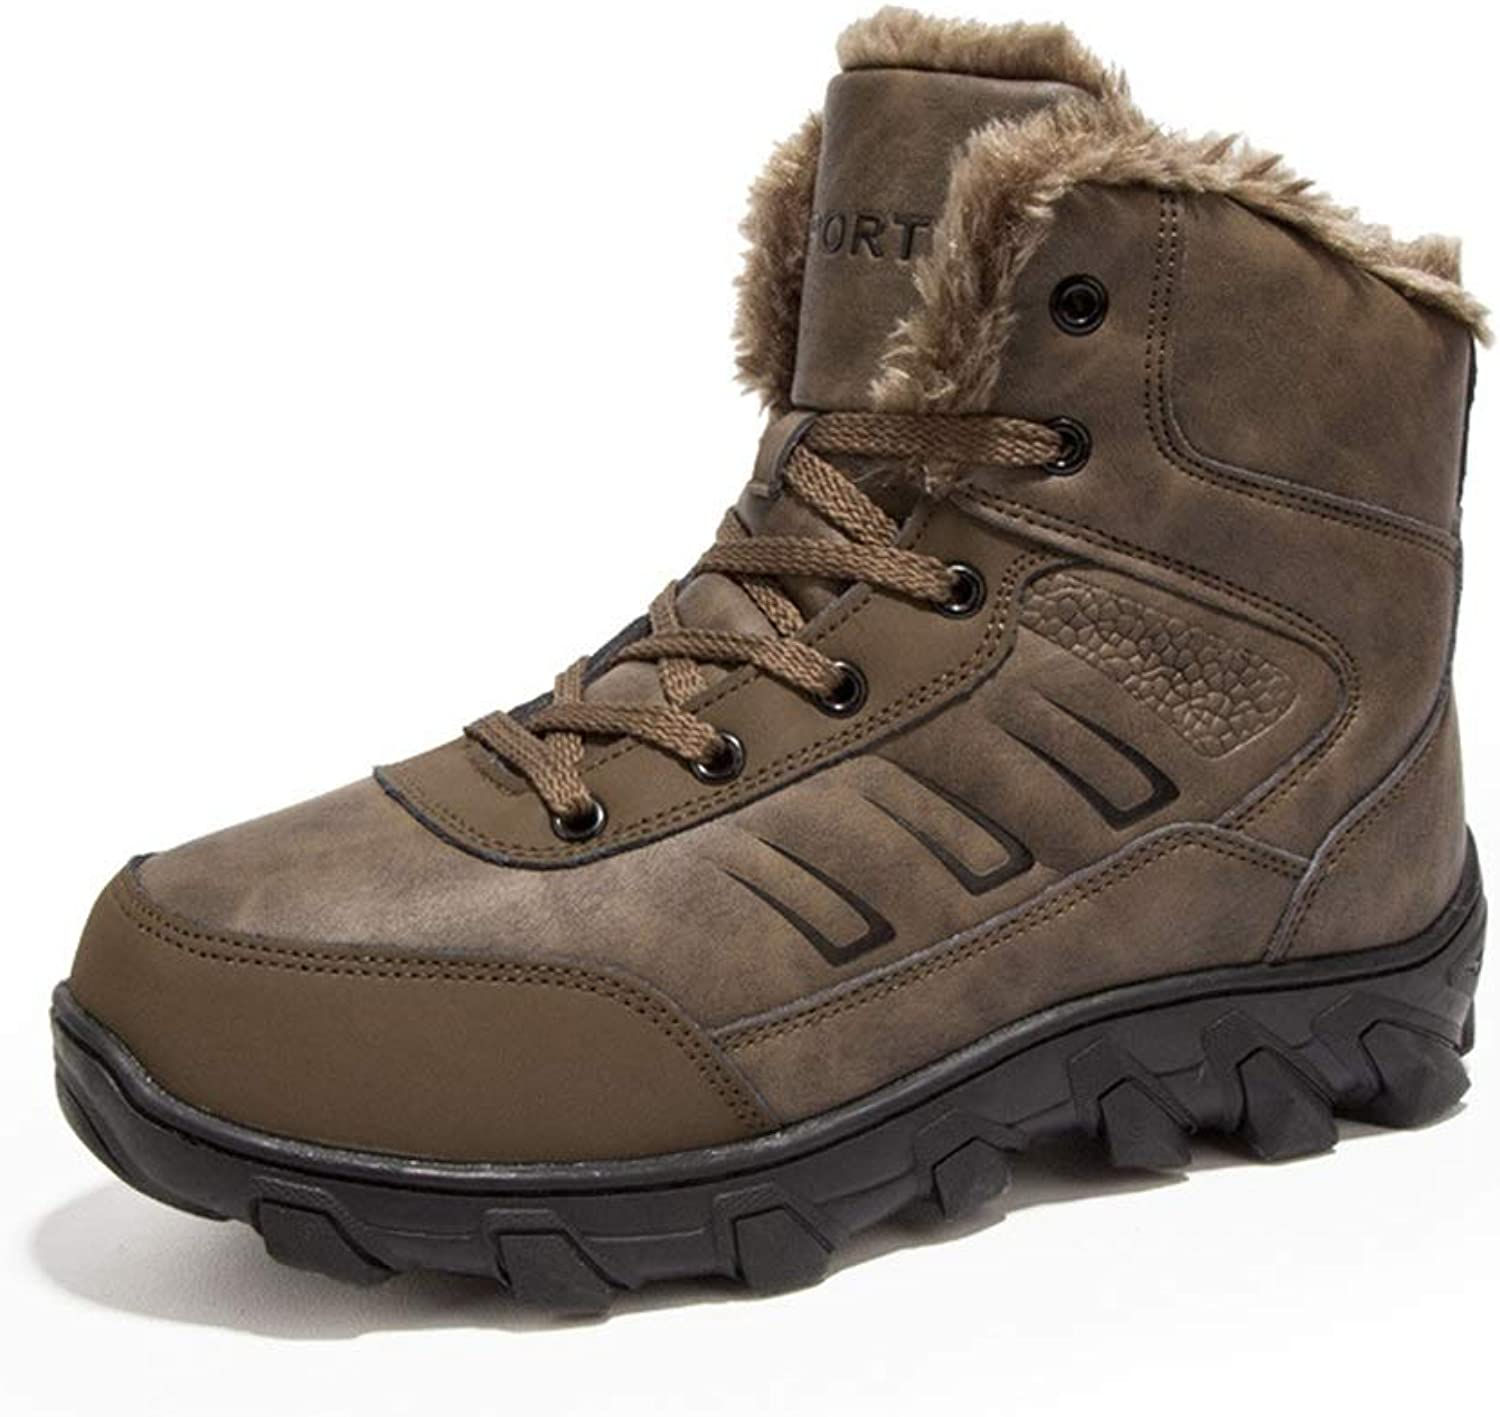 Men's Leather Boots, Martin Boots Europe and The United States Trend Comfort High-Top Boots Tooling Boots to Keep Warm Large Size Cotton shoes Non-Slip Walking Boot Running Boots XUE